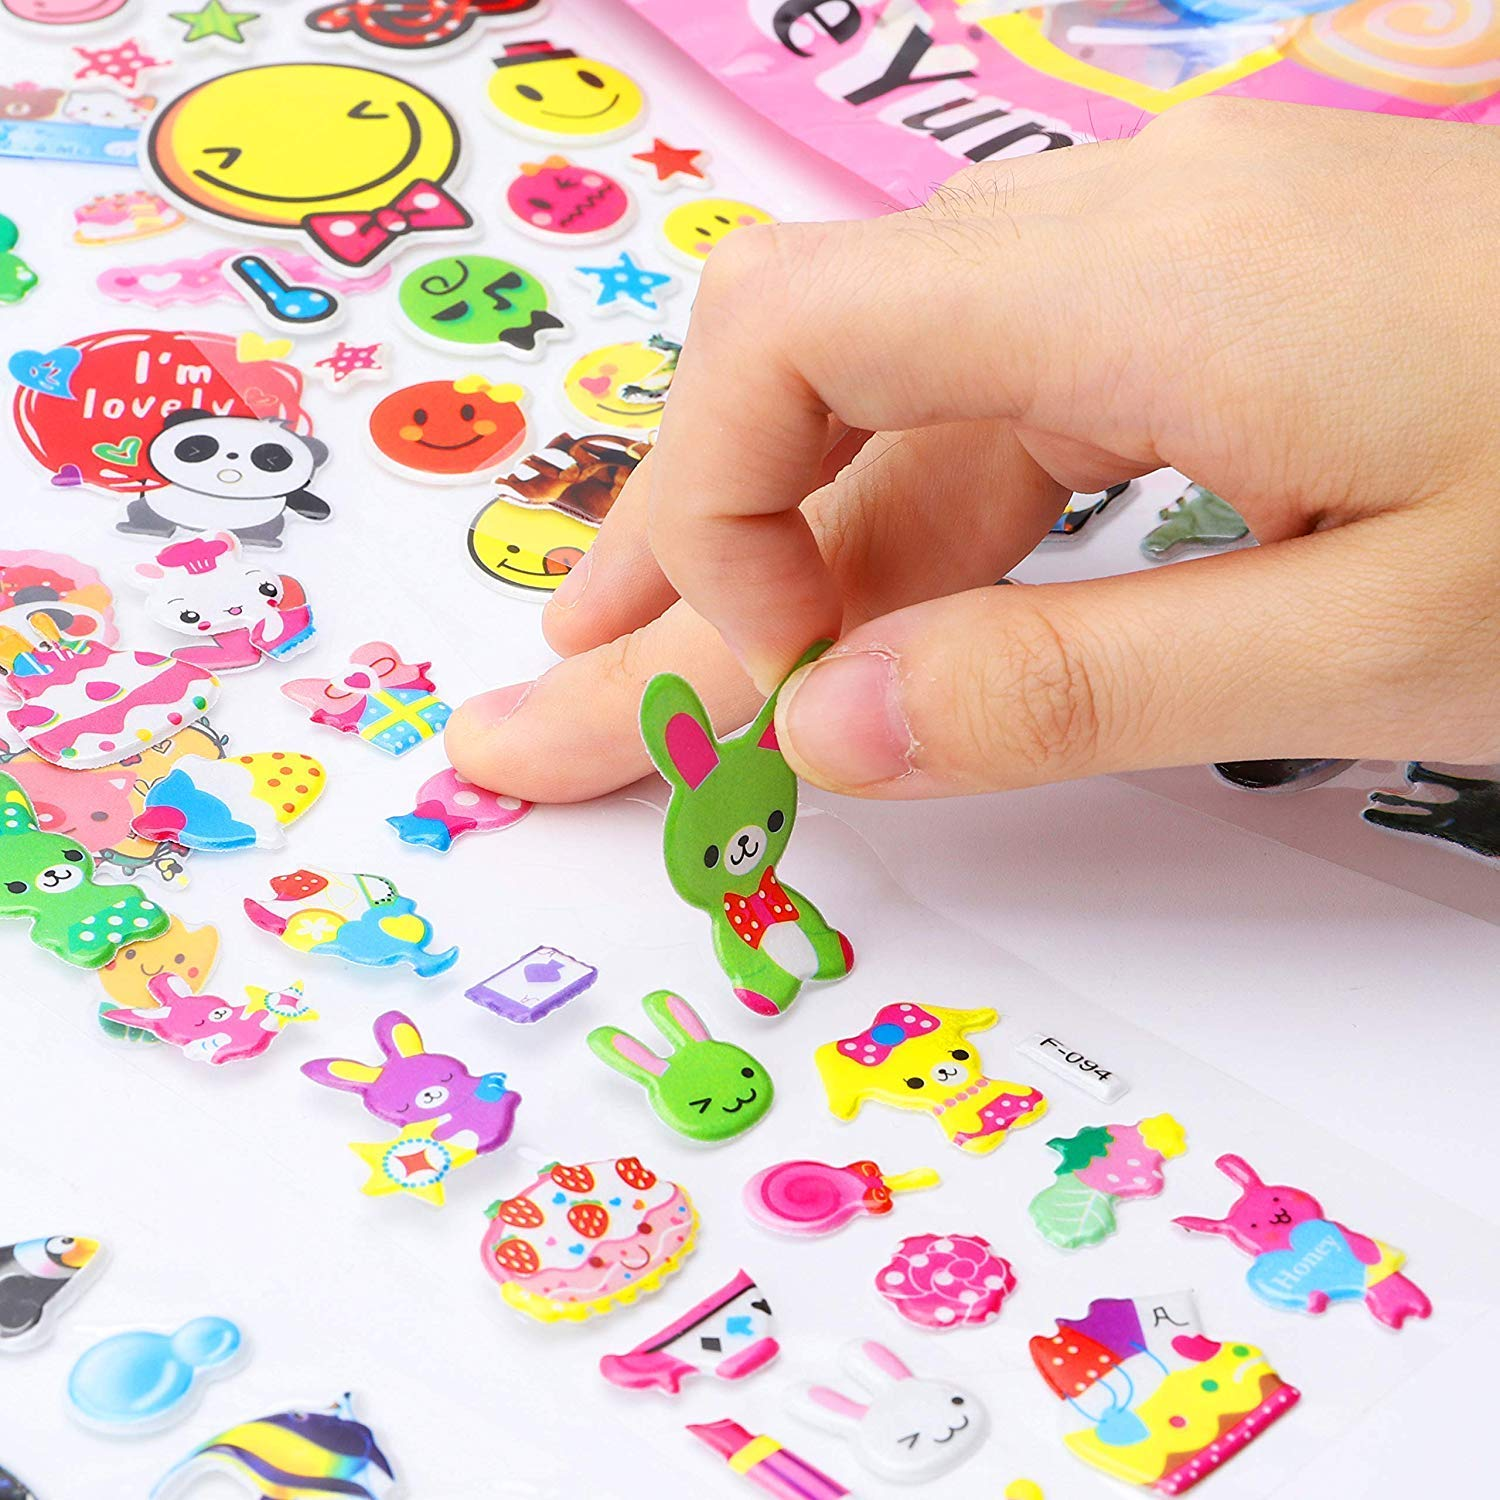 WENTS Stickers for Kids 600 3D Puffy Stickers Pack Scrapbooking Bullet Journals Cute Doll Clothes Accessories Stickers 40 Sheets Birthday Present Gift for Girl Boy